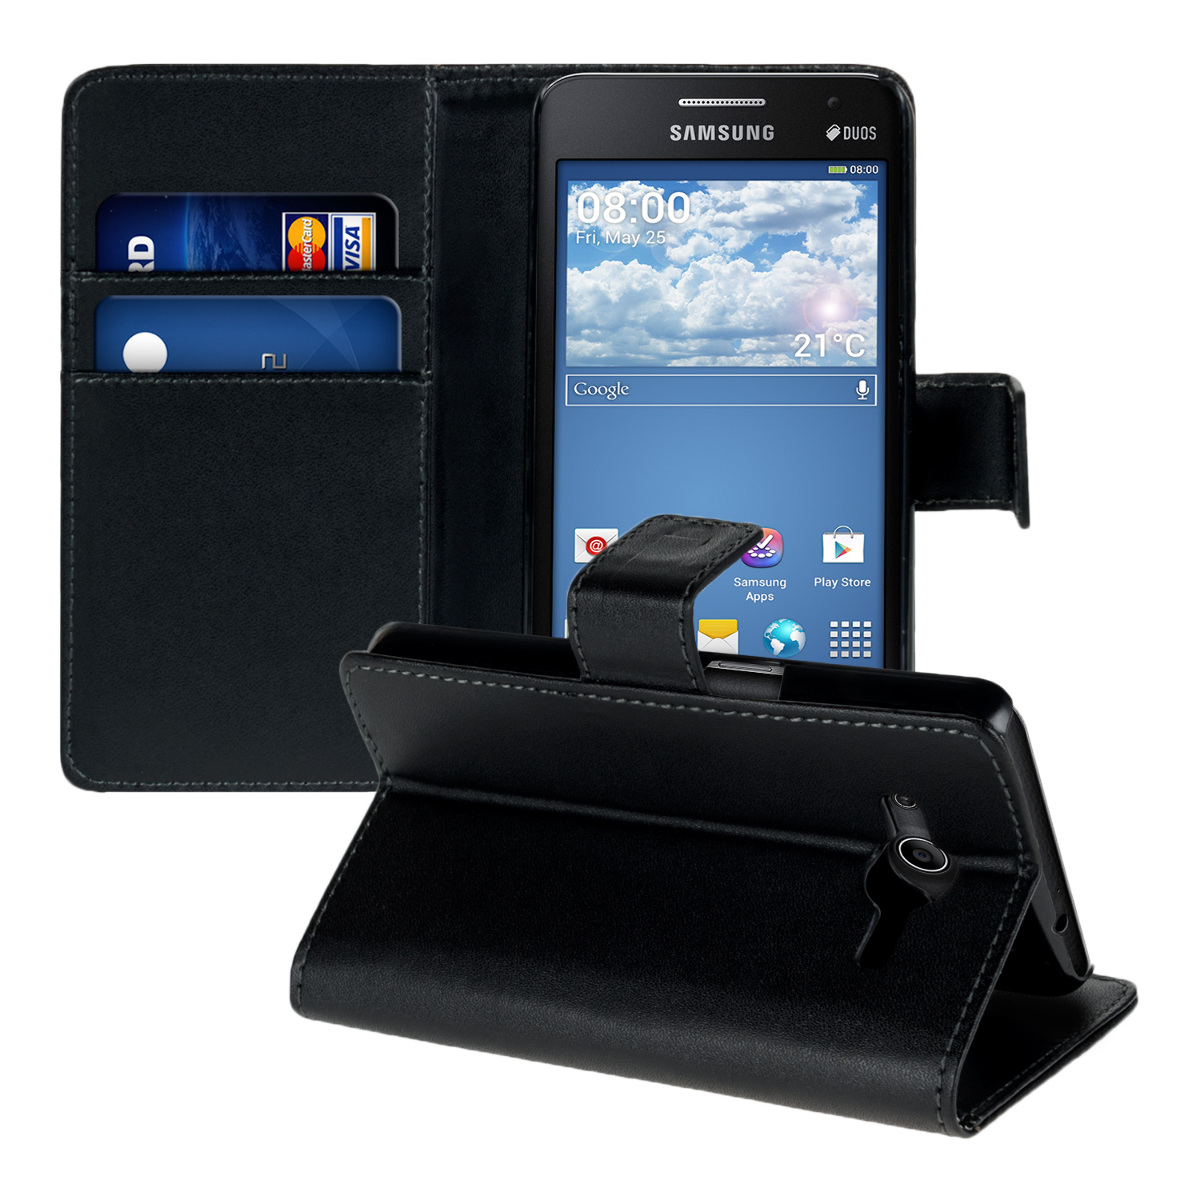 kwmobile-HOUSSE-EN-CUIR-SYNTHETIQUE-ELEGANT-POUR-SAMSUNG-GALAXY-CORE-II-DUOS